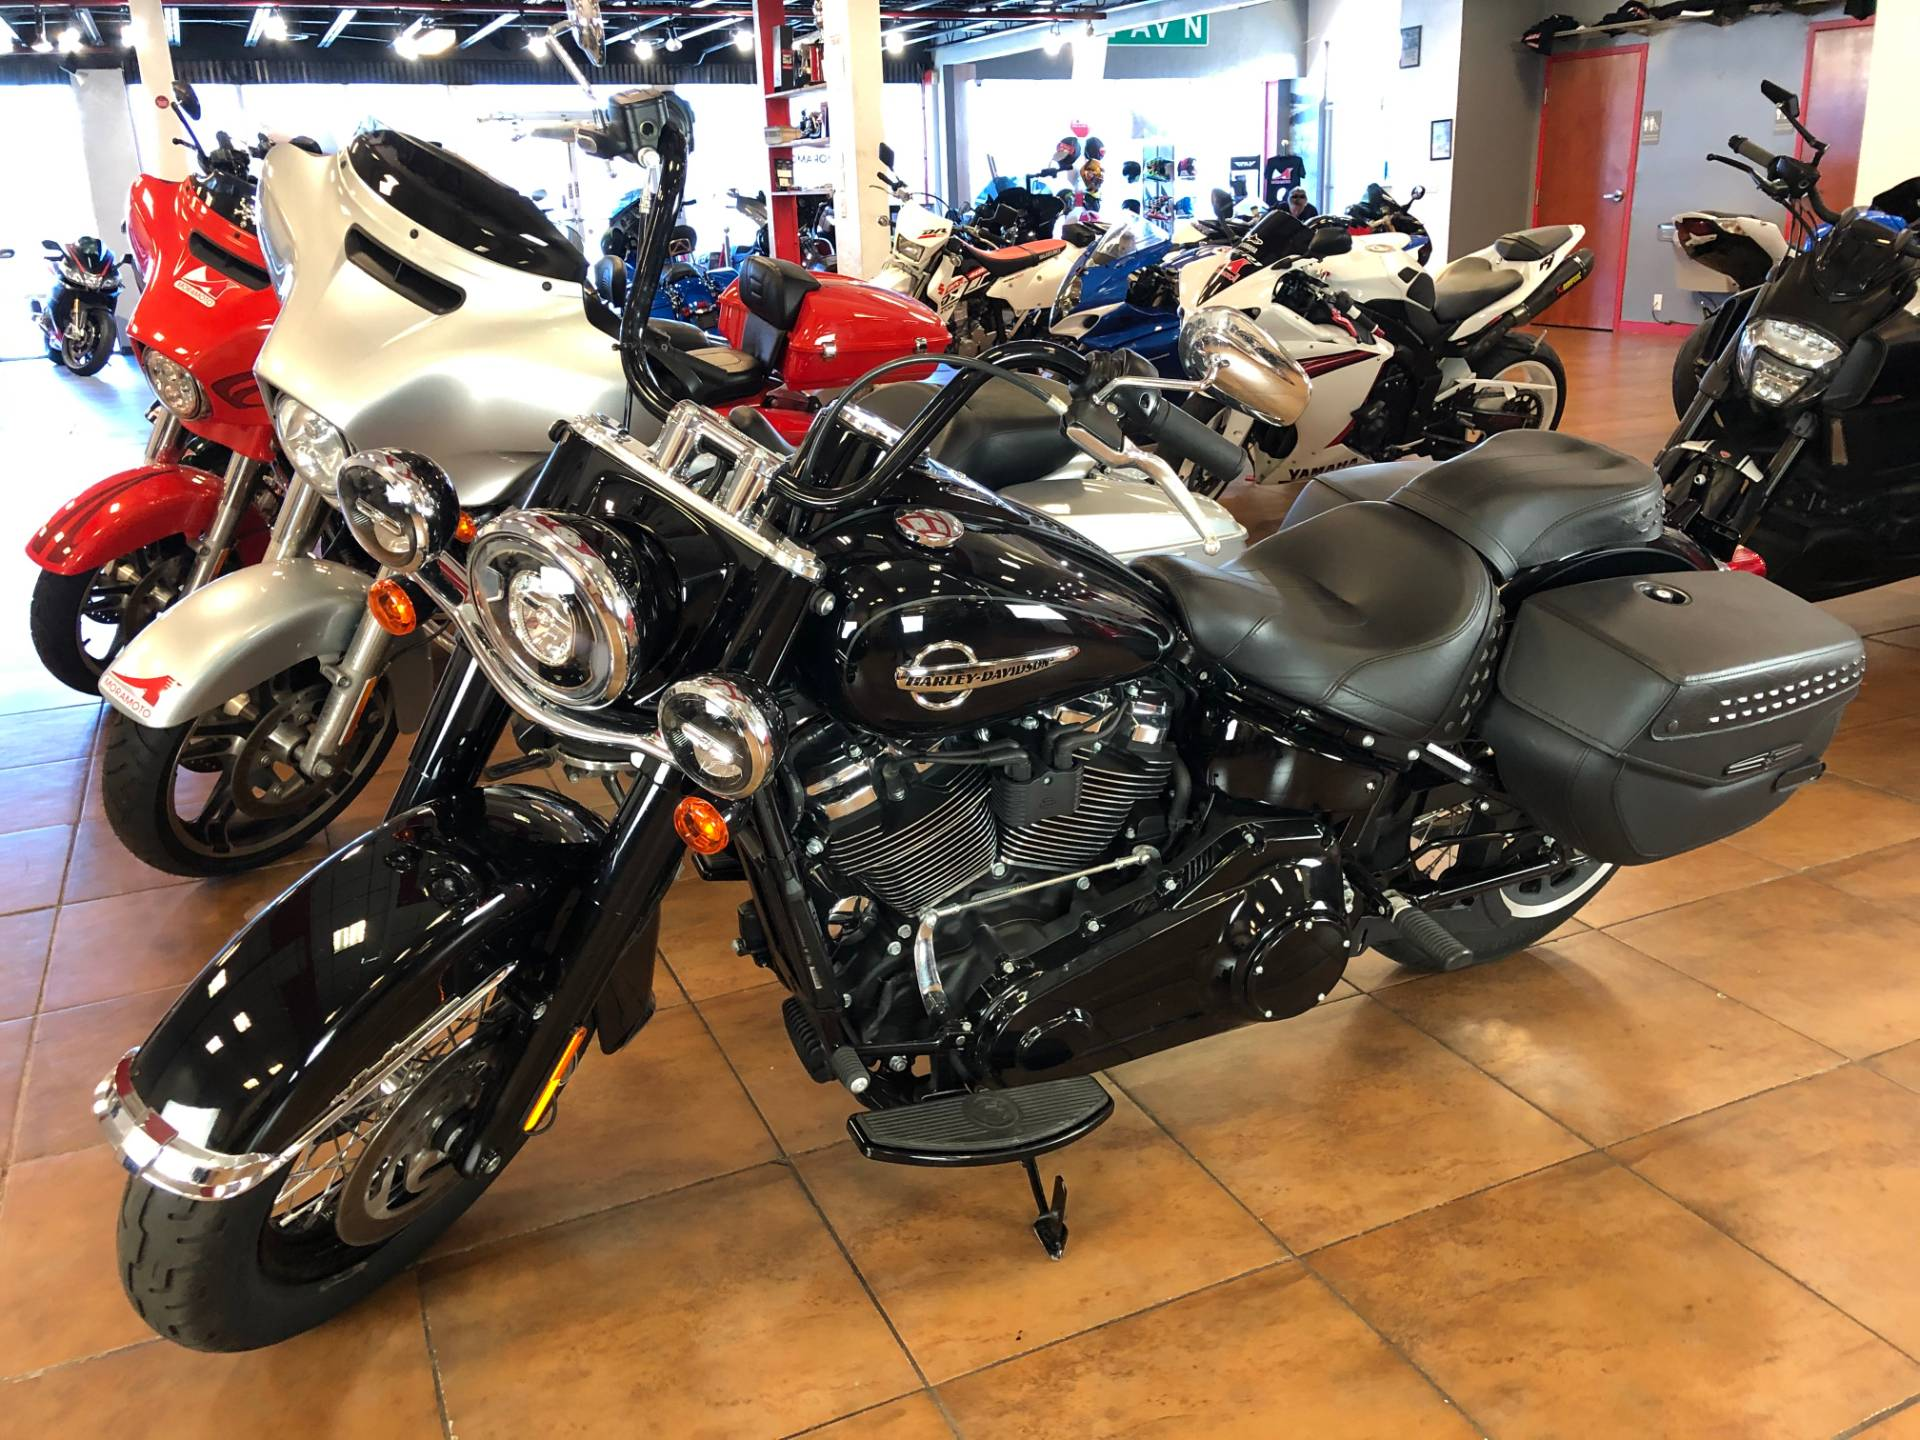 2019 Harley-Davidson Heritage Classic 107 in Pinellas Park, Florida - Photo 12